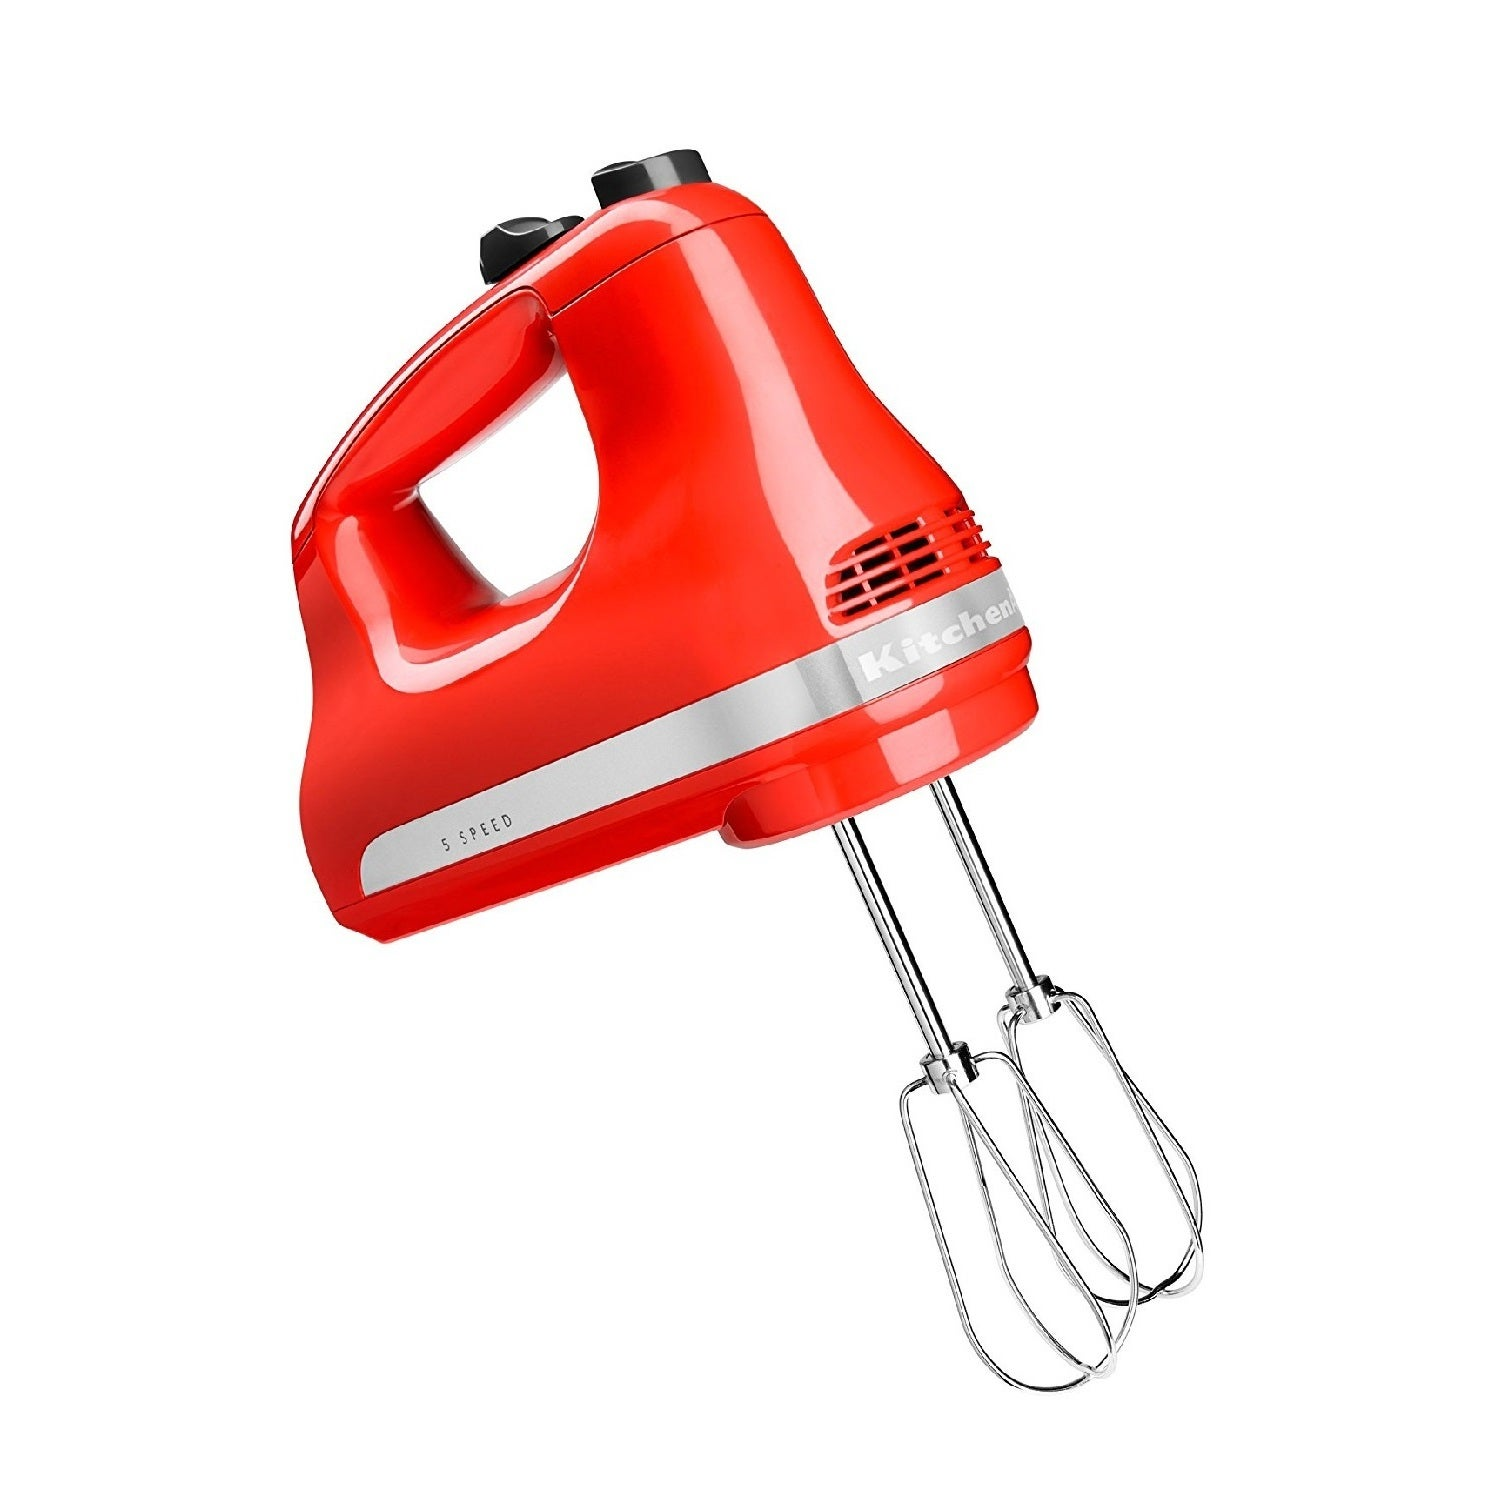 KitchenAid 5-Speed Hand Mixer, Hot Sauce, Silver stainles...